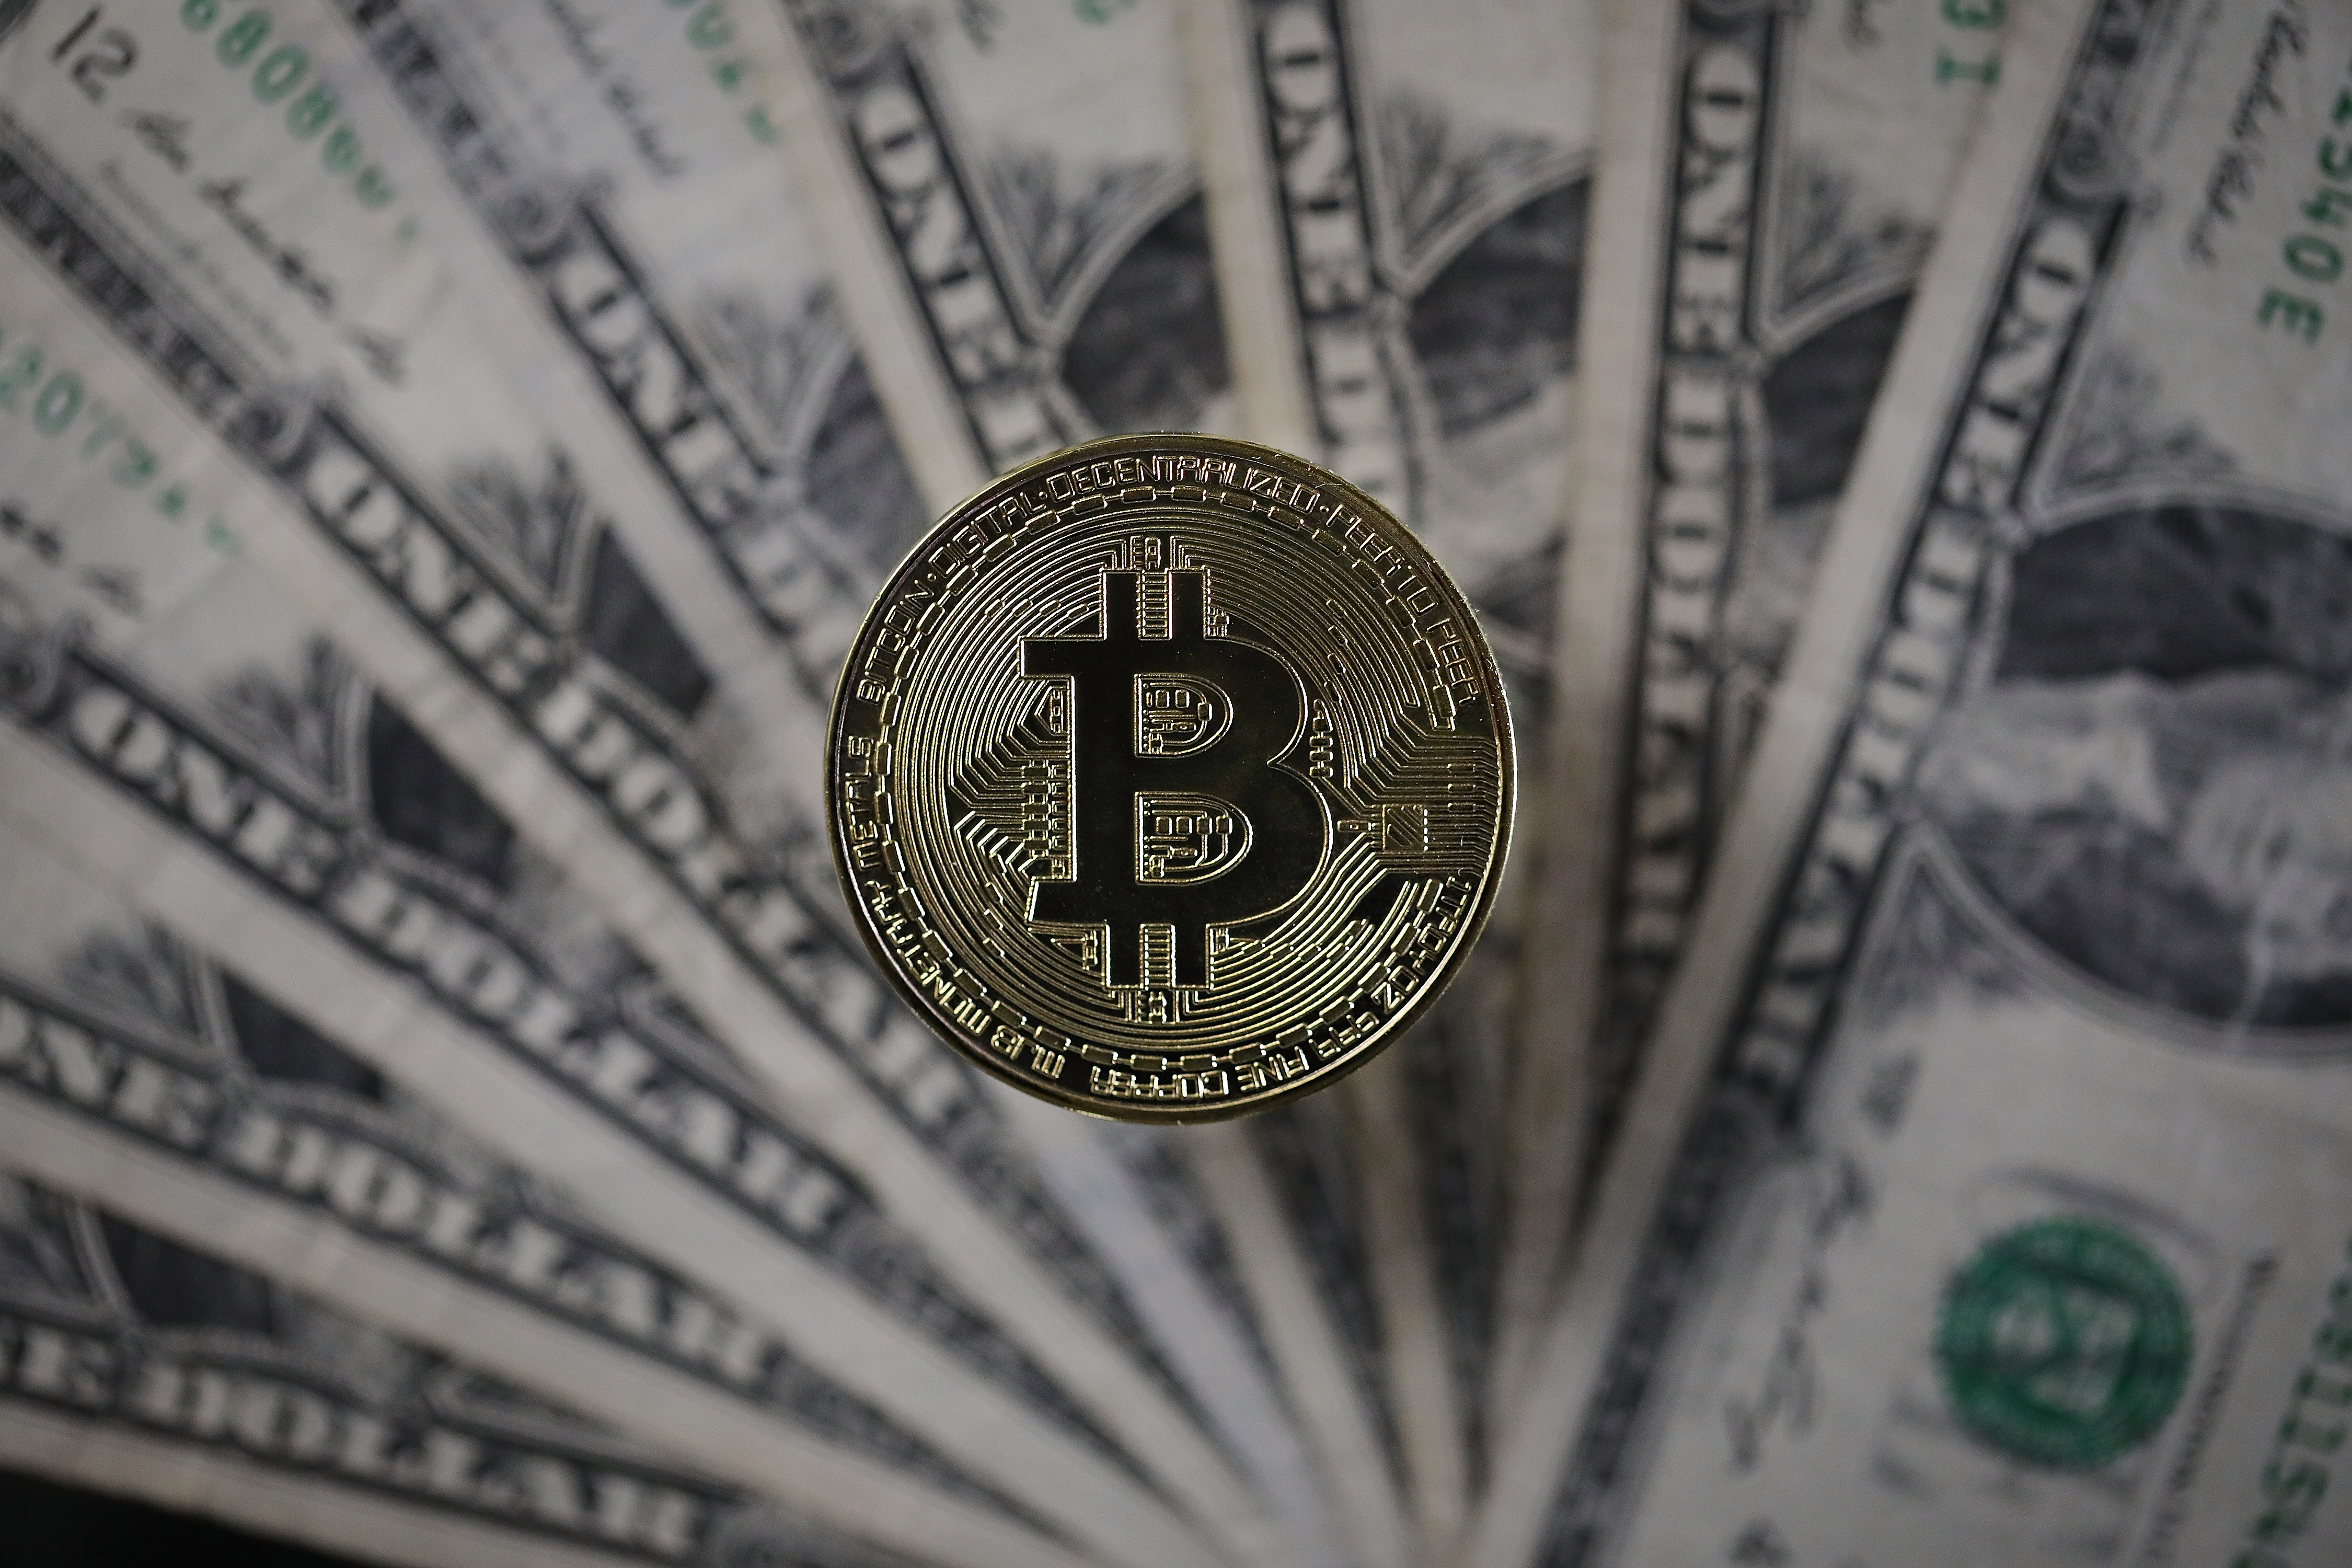 Cryptocurrencies including Bitcoin, Ethereum, and Lightcoin have seen unprecedented growth in 2017, despite remaining extremely volatile. While digital currencies across the board have divided opinion between financial institutions.